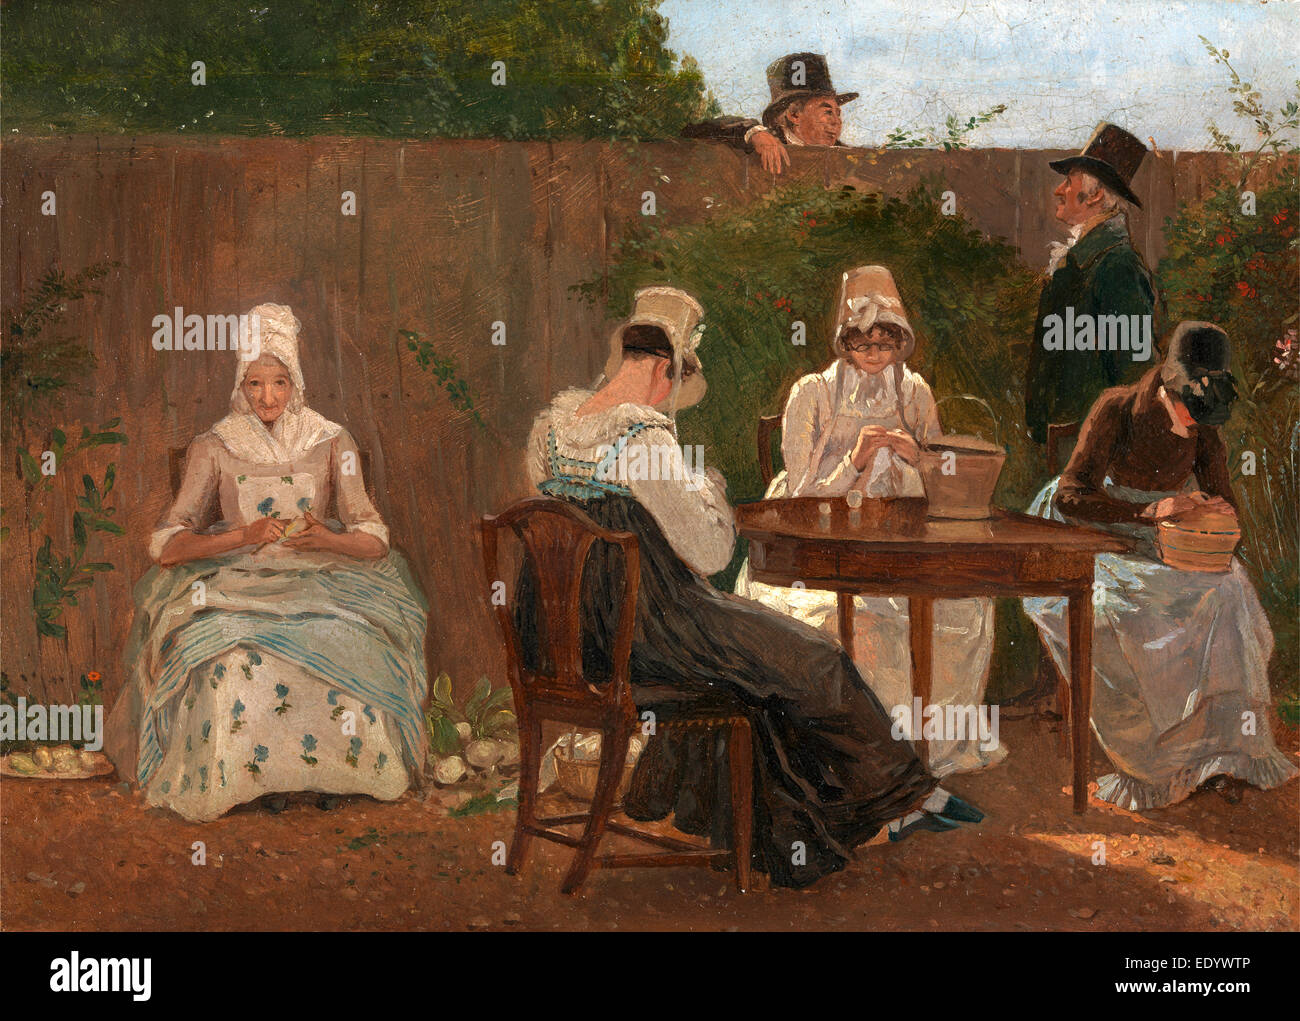 The Chalon Family in London, Jacques-Laurent Agasse, 1767-1849, Swiss - Stock Image